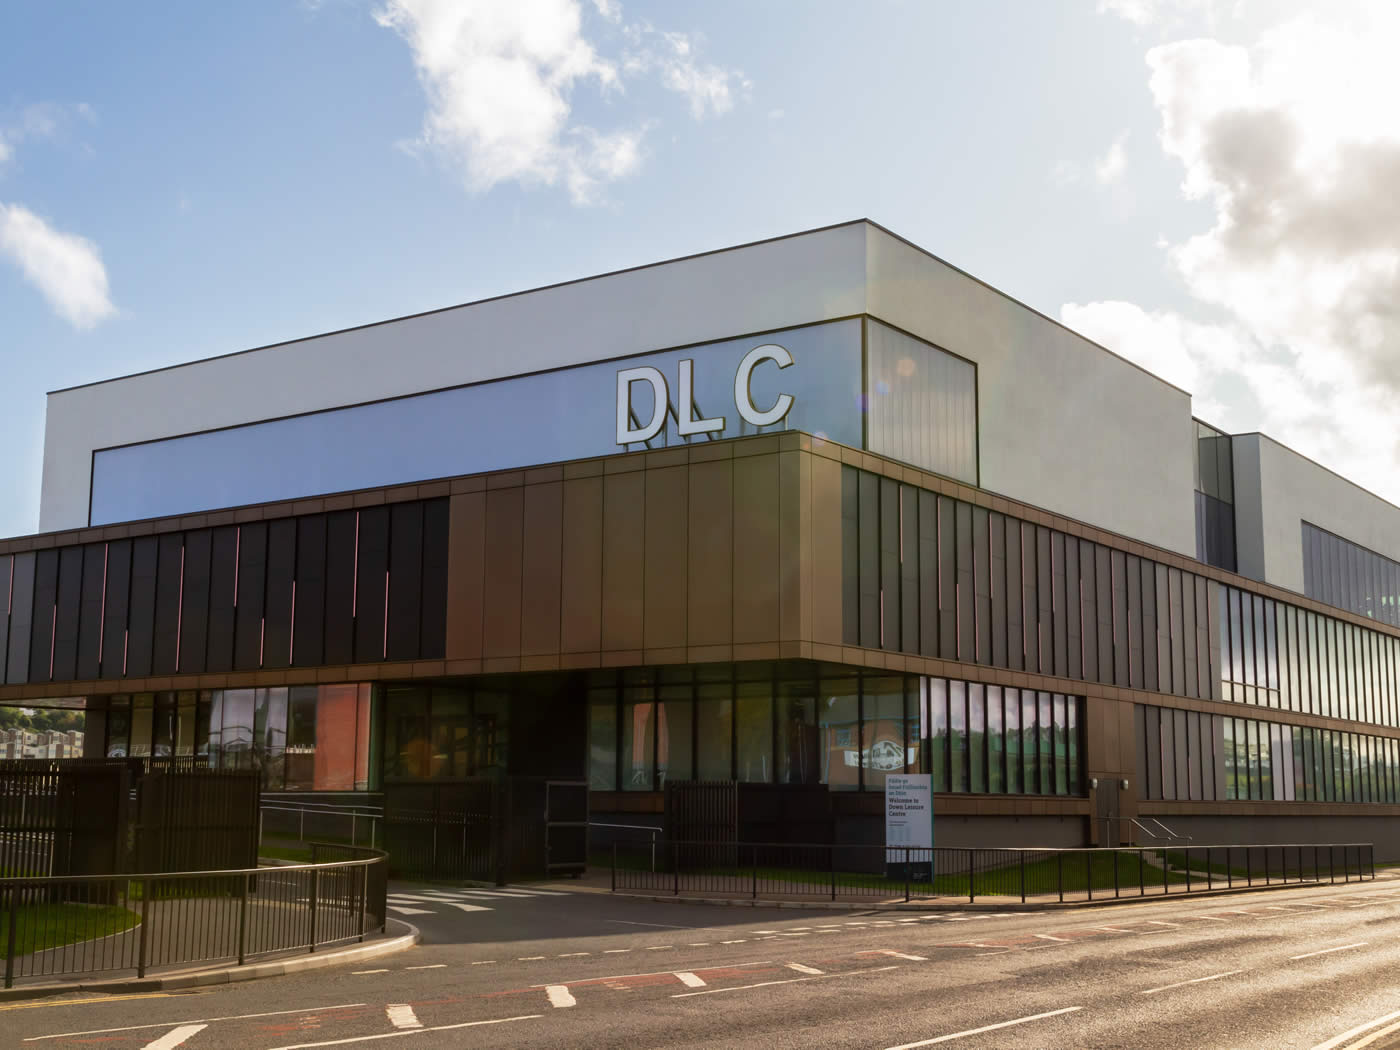 Downpatrick Leisure Centre